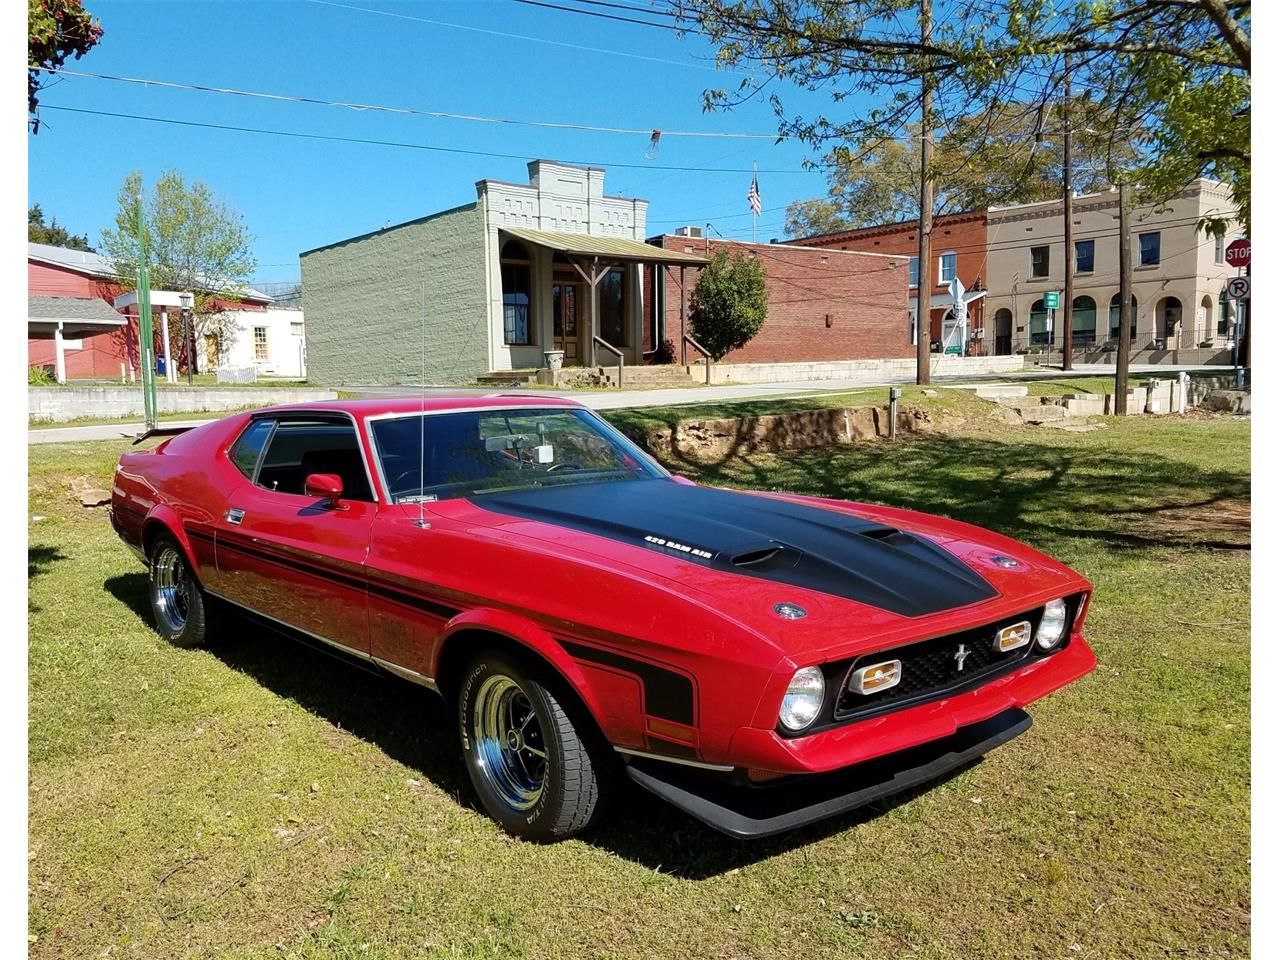 1972 Ford Mustang Mach 1 for Sale | ClassicCars.com | CC-1065343